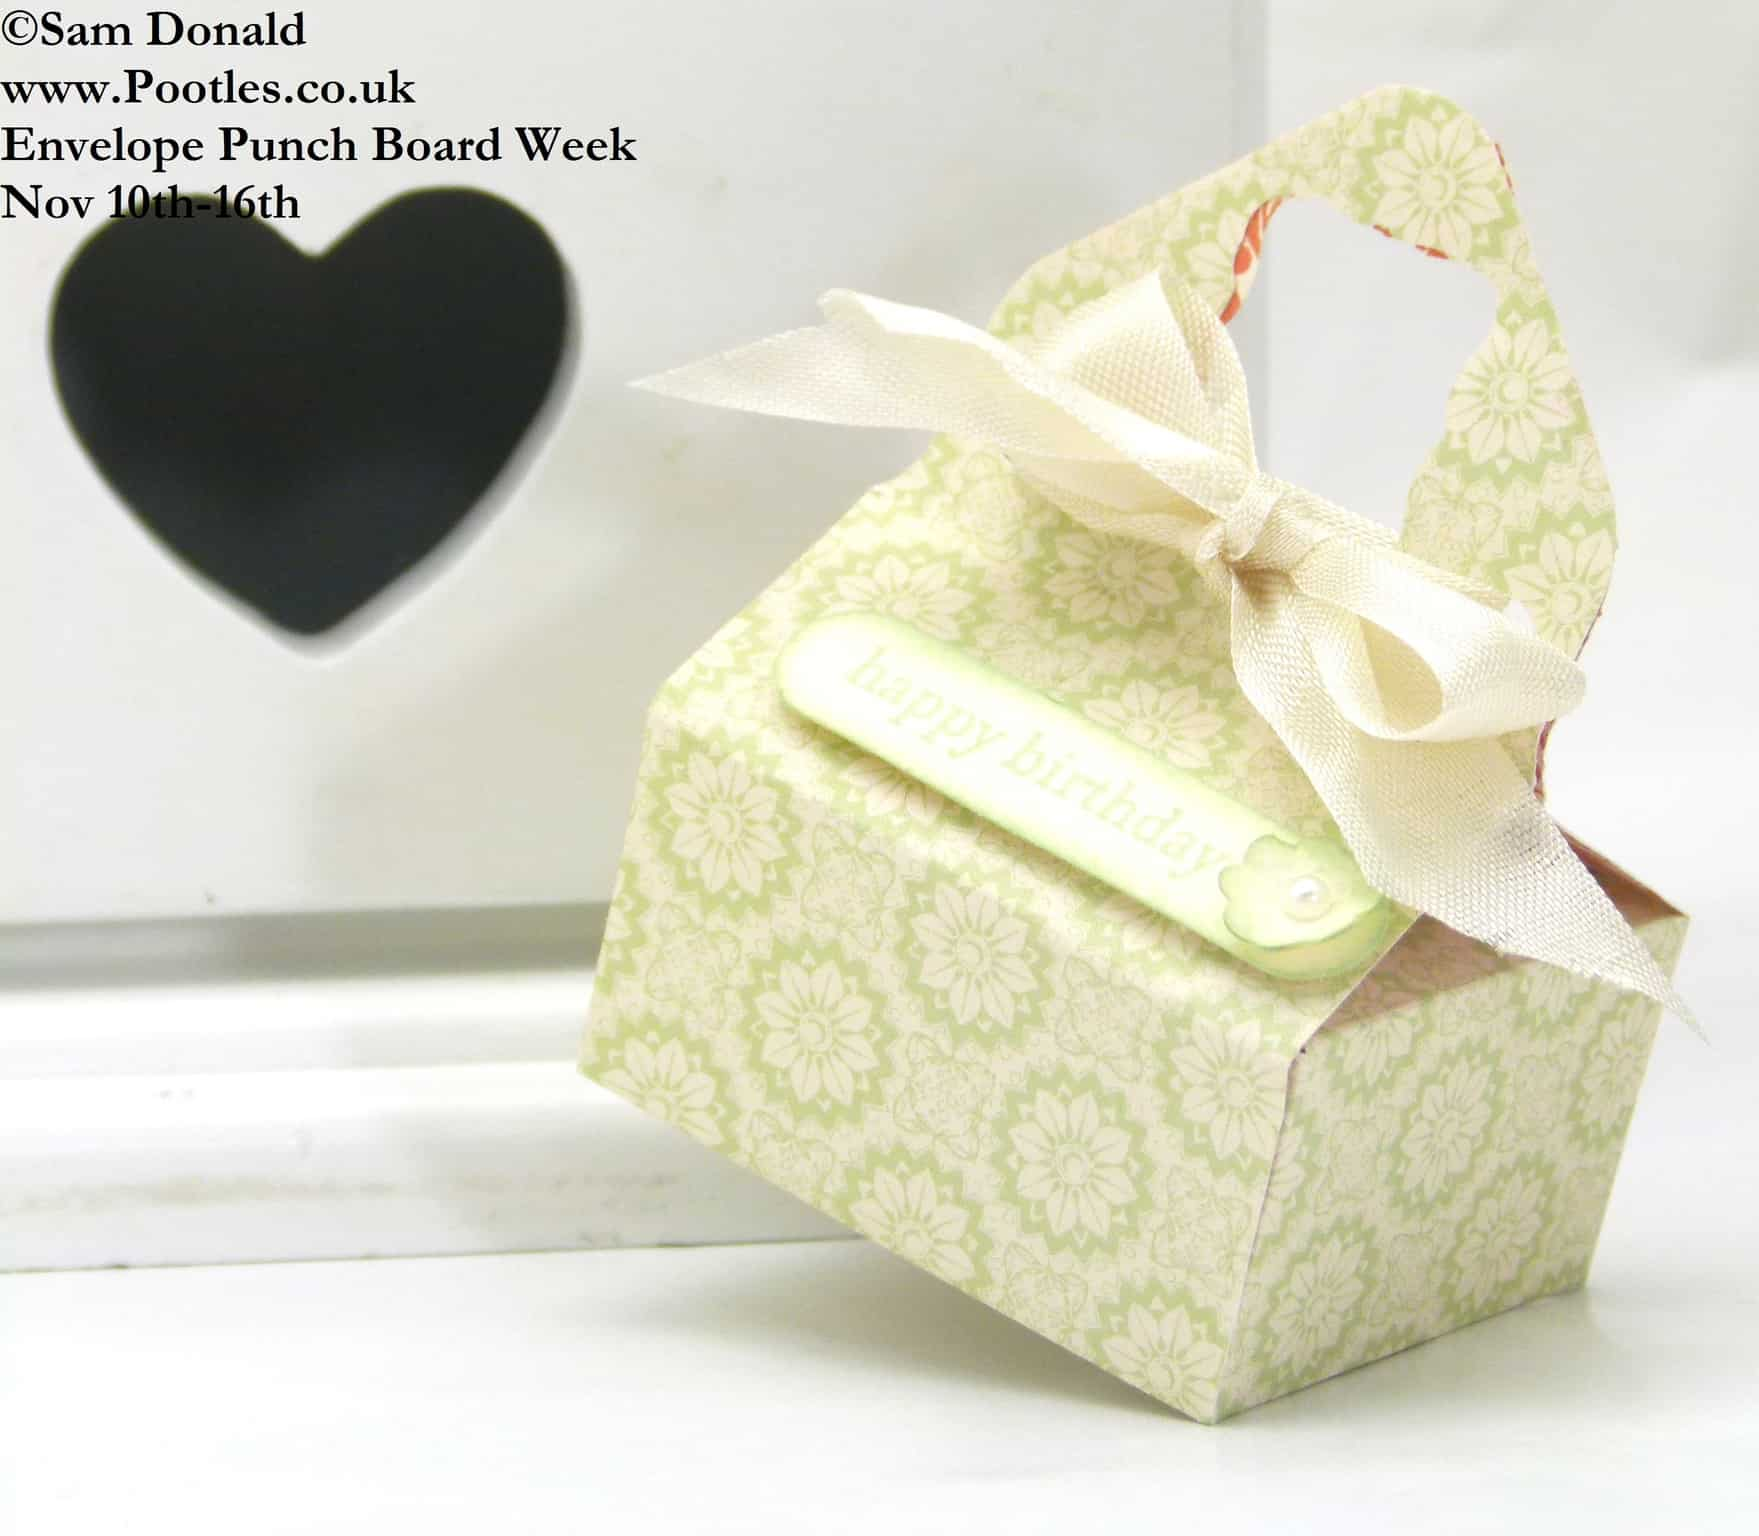 POOTLES Stampin Up ENVELOPE PUNCH BOARD WEEK The Sewing Style Box 3